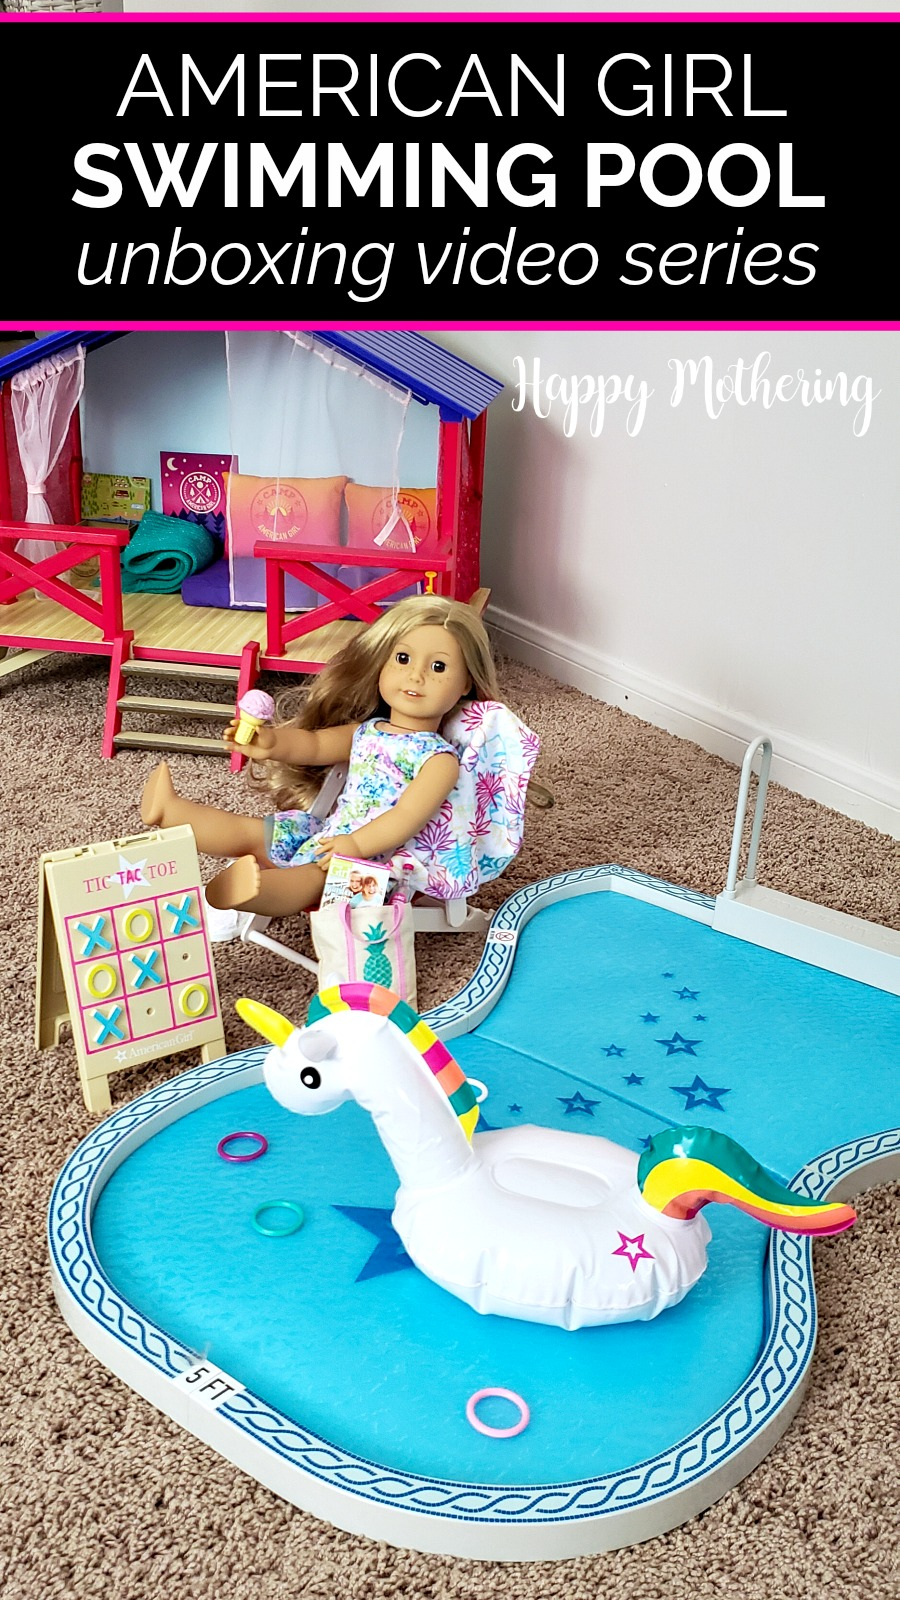 Summer is here and the weather is hot. Kaylee's Truly Me doll Abby is going to love cooling off in the American Girl Swimming Pool this summer! Watch us unbox the pool and accessories.